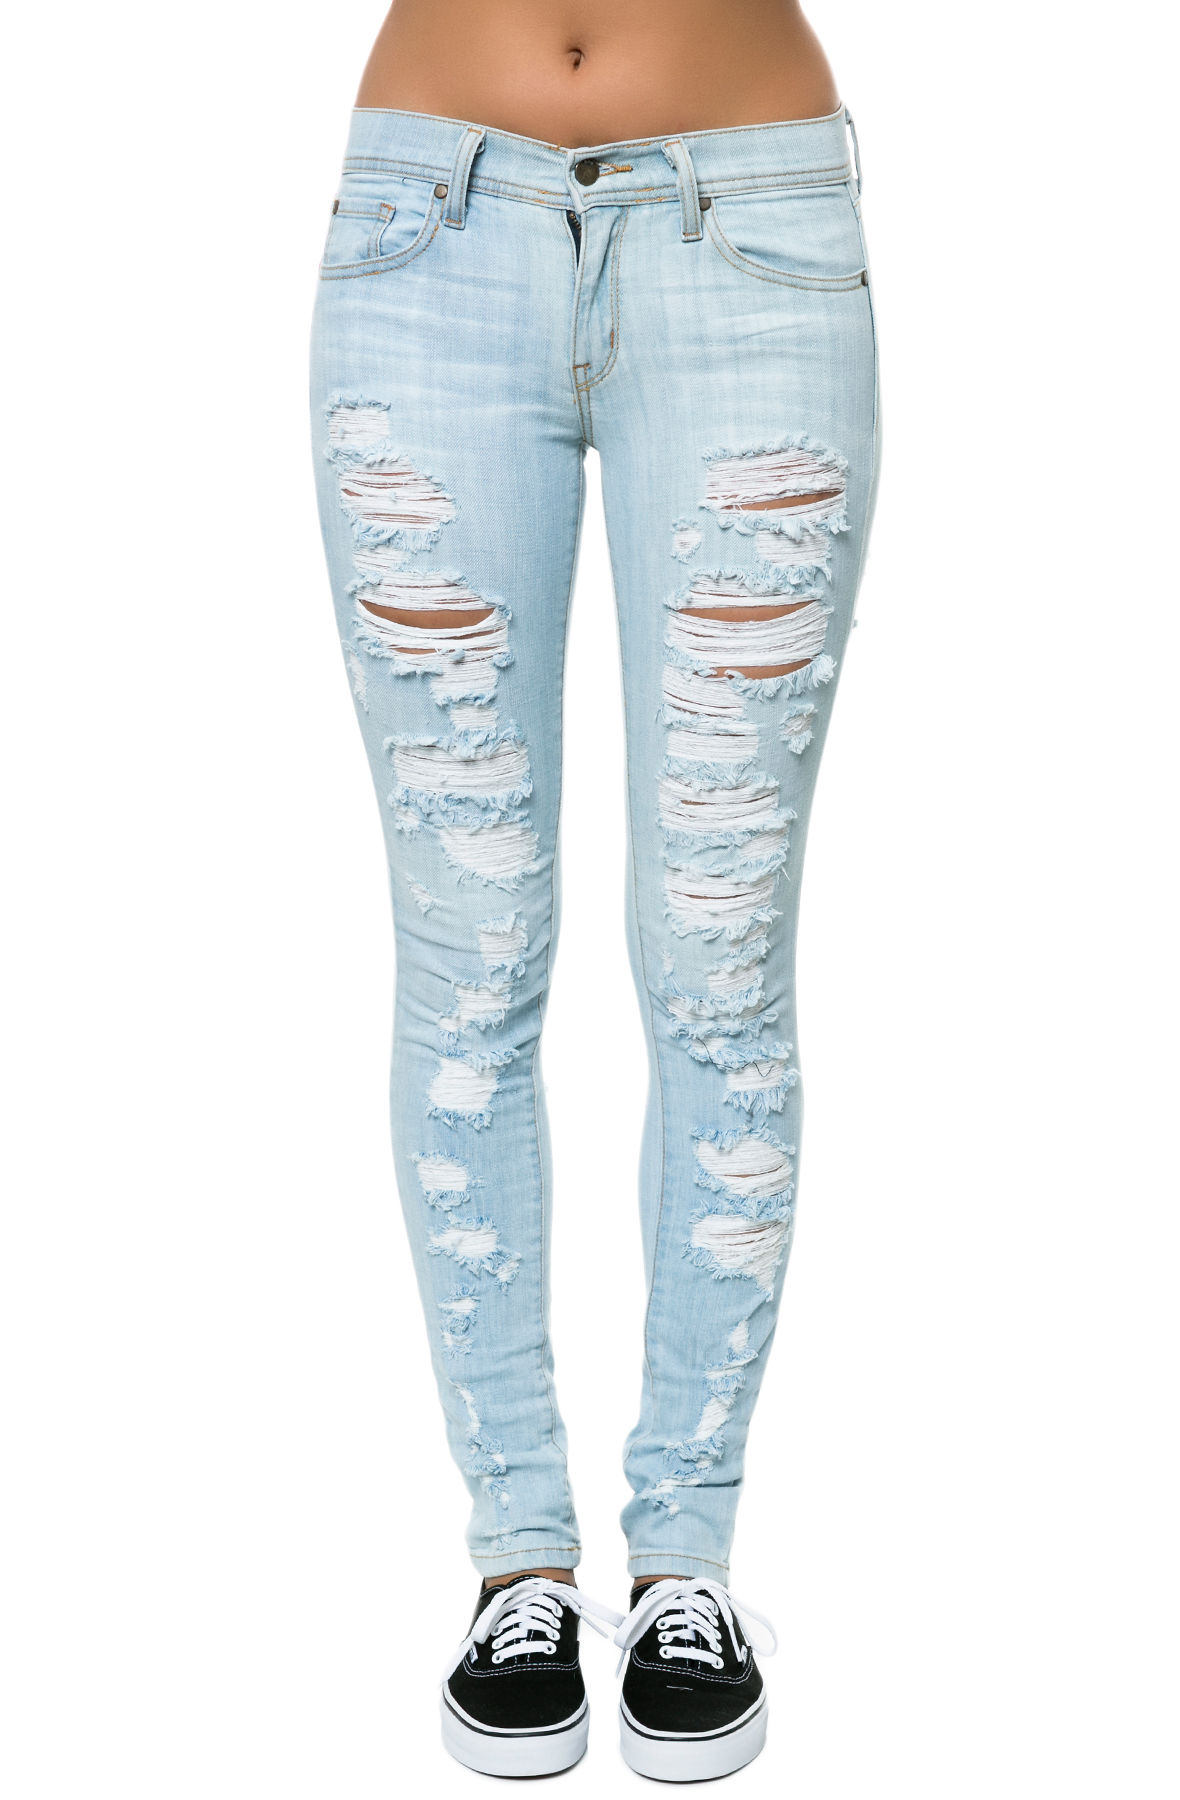 Pistola Denim Jeans Audrey Denim in Slasher Light Blue